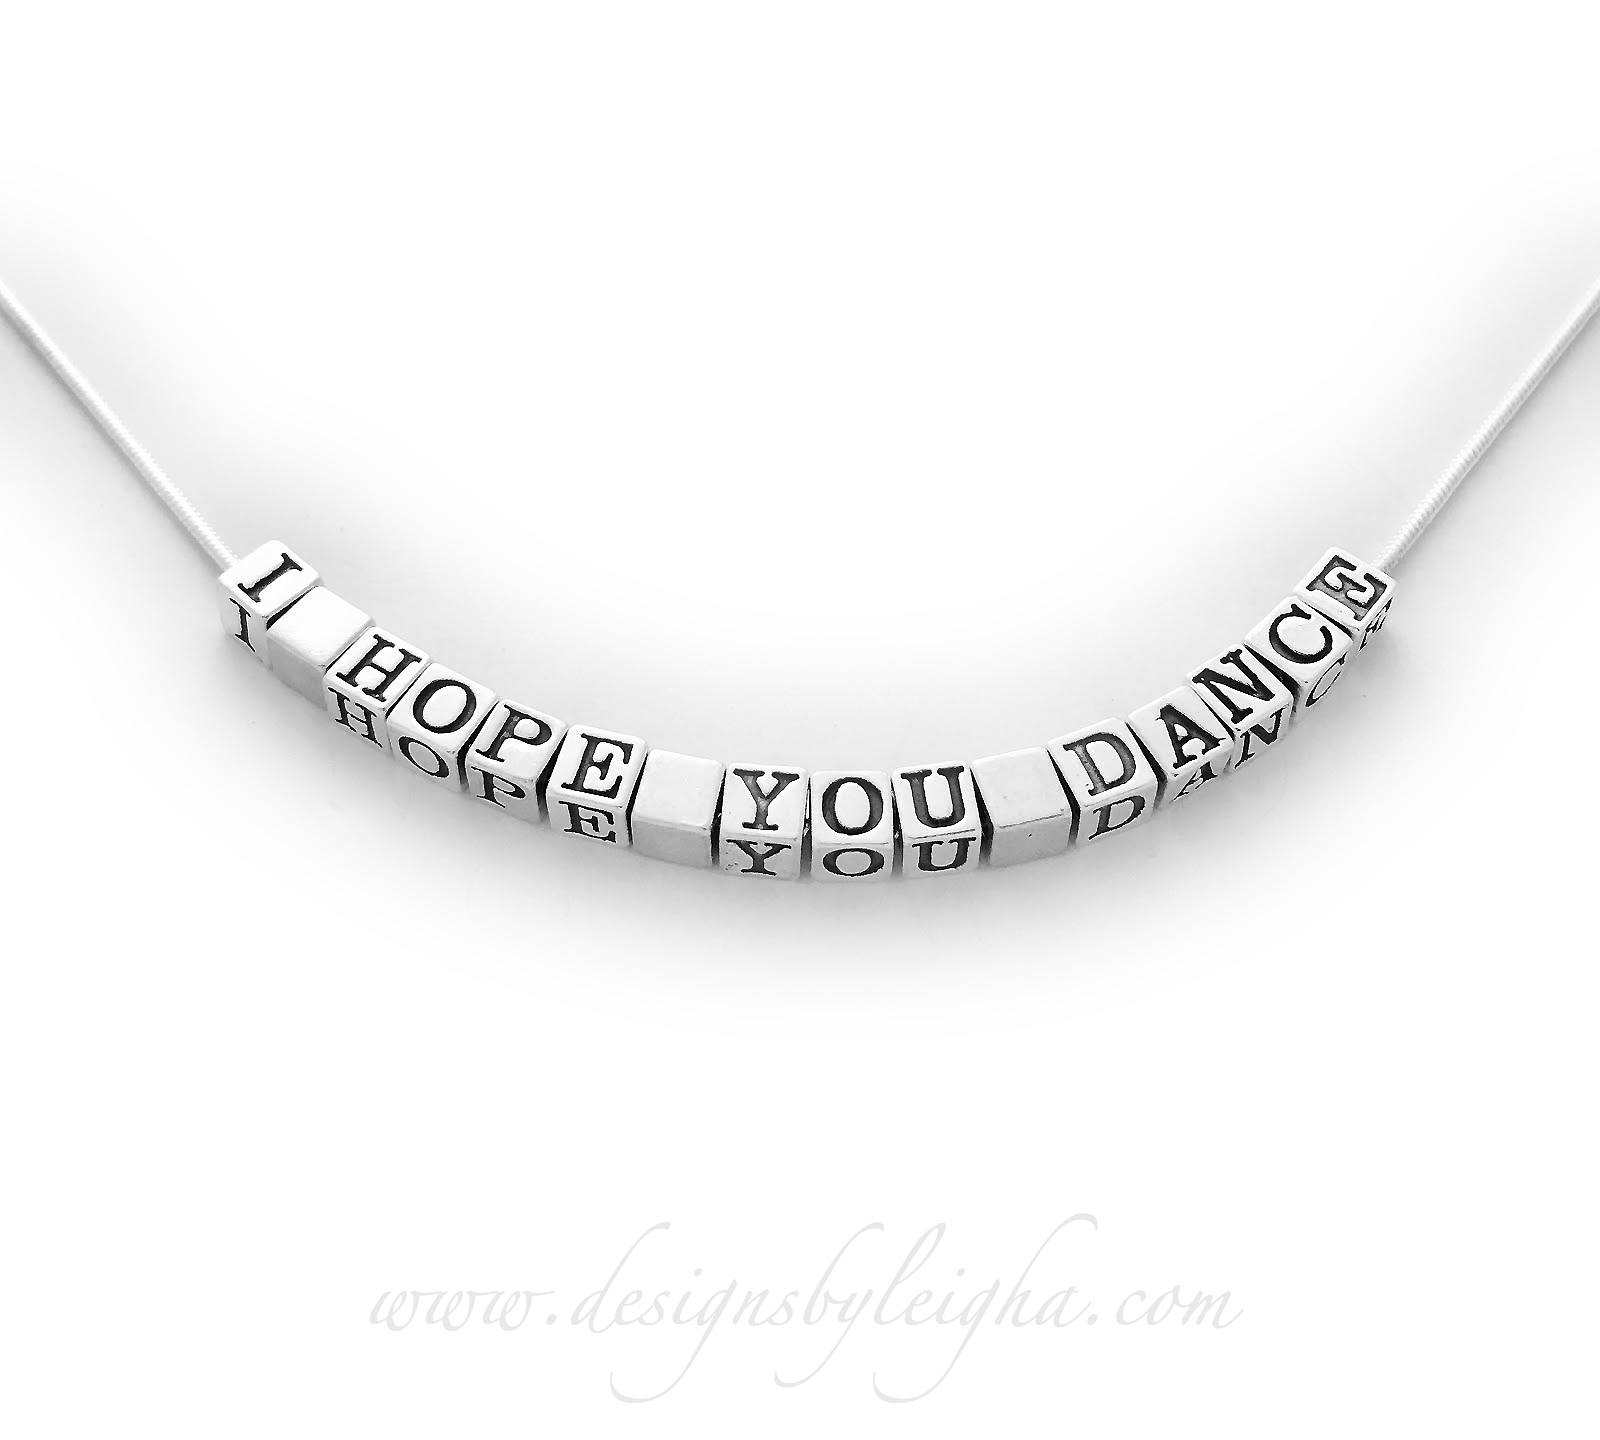 Sterling Silver I HOPE YOU DANCE Necklace shown - any message - inspiring message necklaces or jewelry